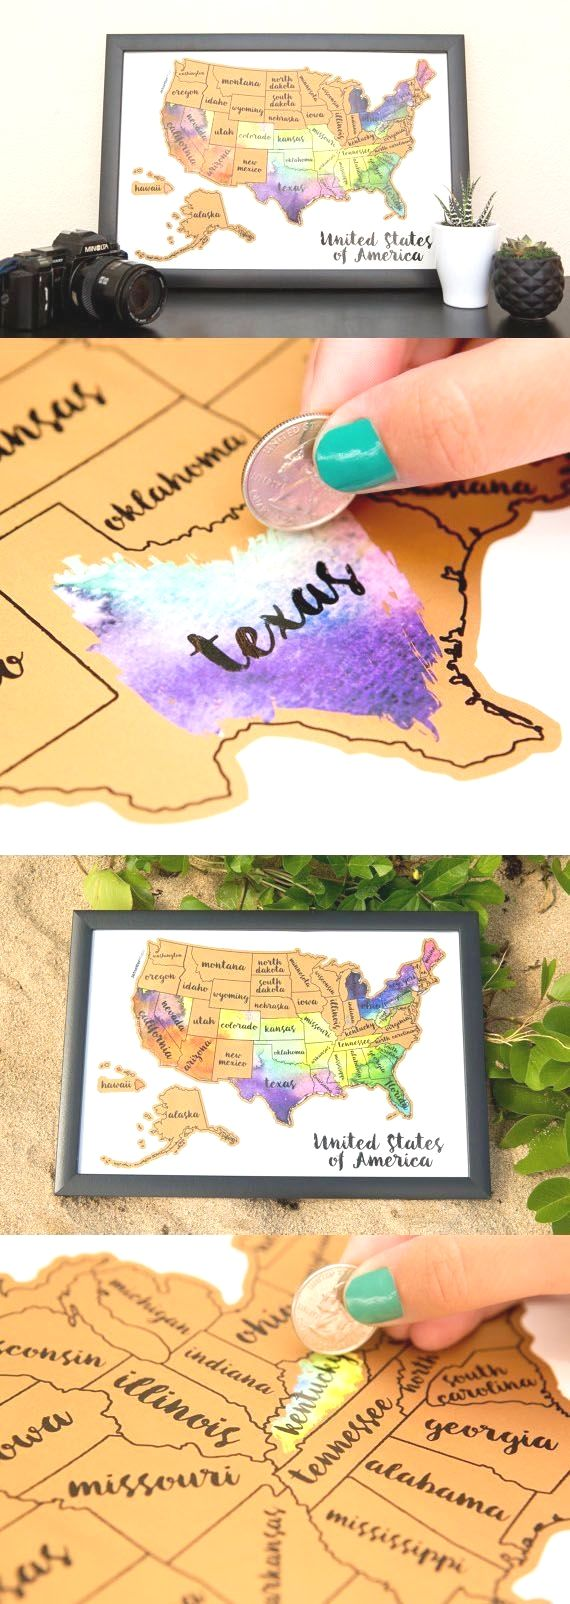 Seattle Map Funny%0A Scratch your travels with this gorgeous original watercolor world map   Bright  bold  u     interactive wall art that will fit any   x   size frame  Use   u